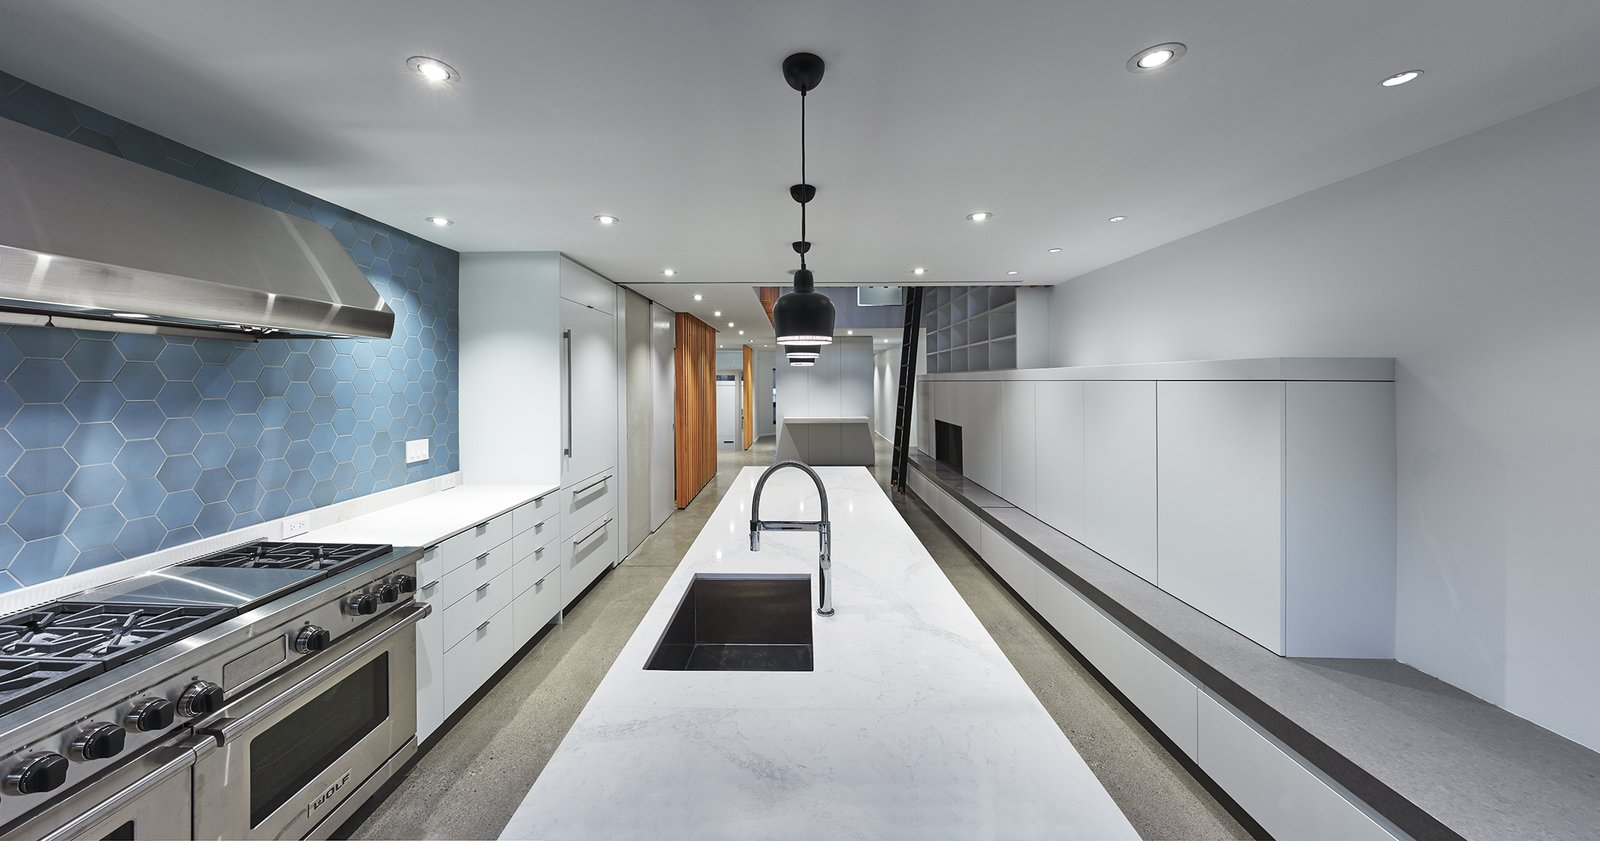 Kitchen, White Cabinet, Concrete Floor, Ceramic Tile Backsplashe, Pendant Lighting, Recessed Lighting, Range Hood, Range, Undermount Sink, and Marble Counter Alvar Aalto's A330 pendant fixtures above the kitchen island.  Atrium Townhome by RobitailleCurtis